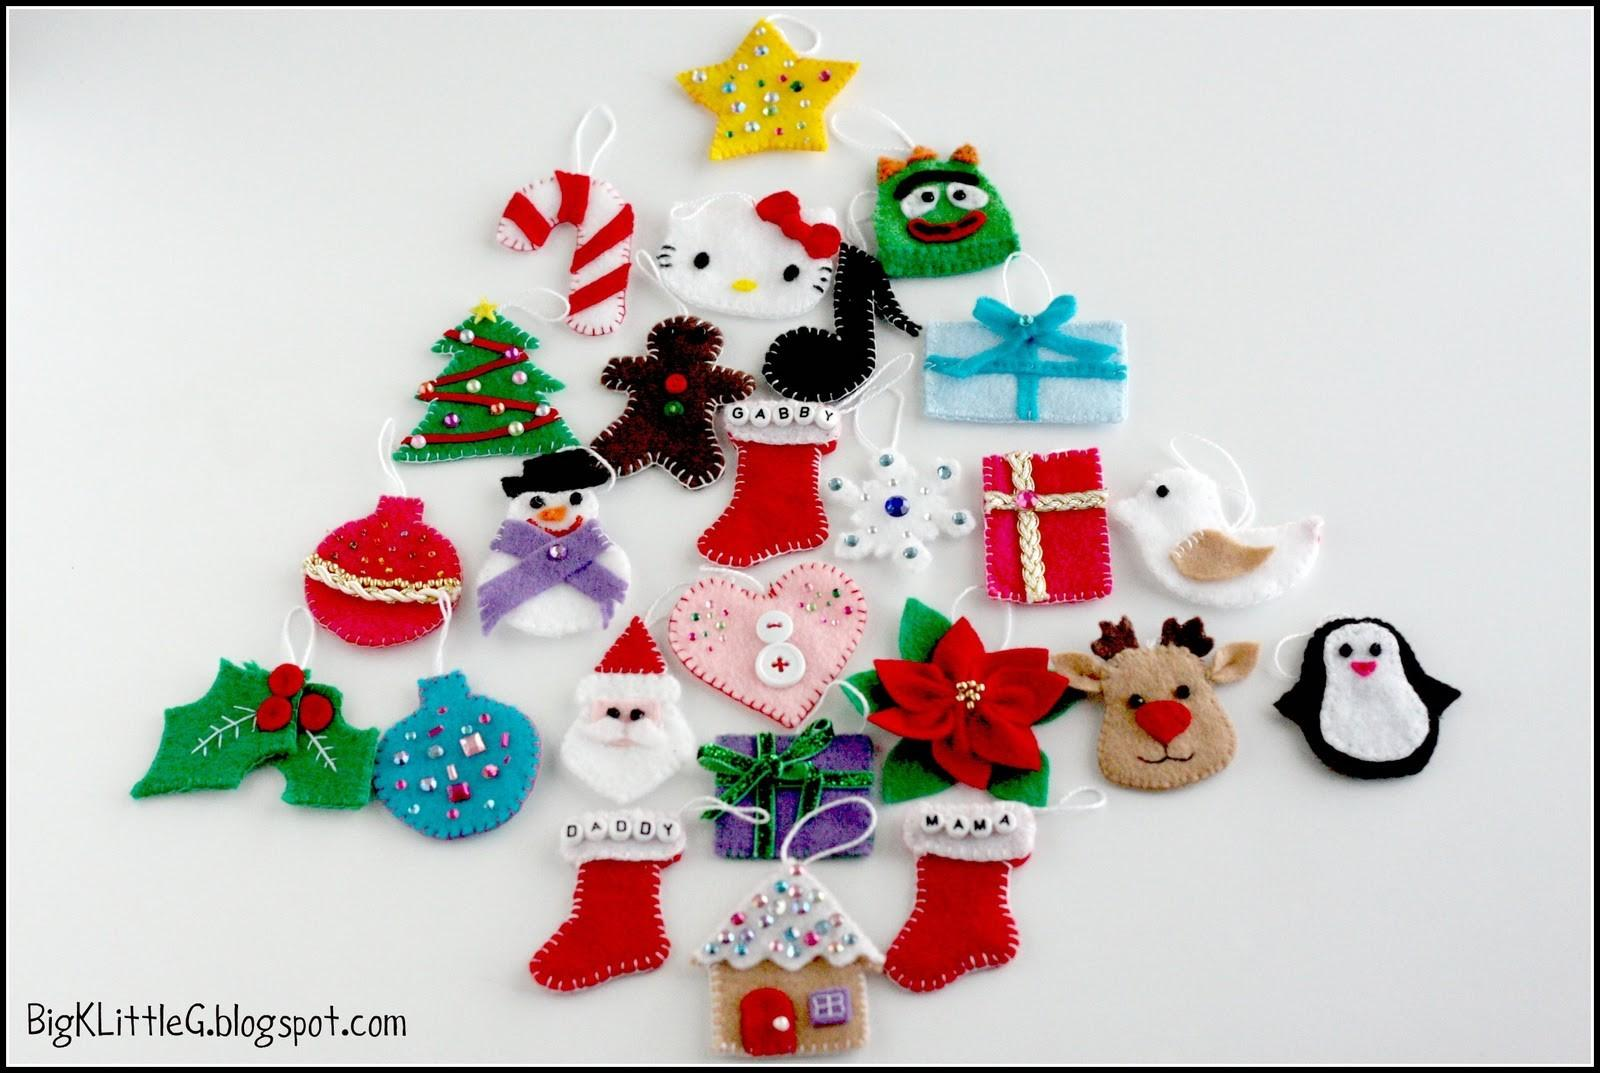 Big Little Diy Felt Christmas Tree Advent Calendar